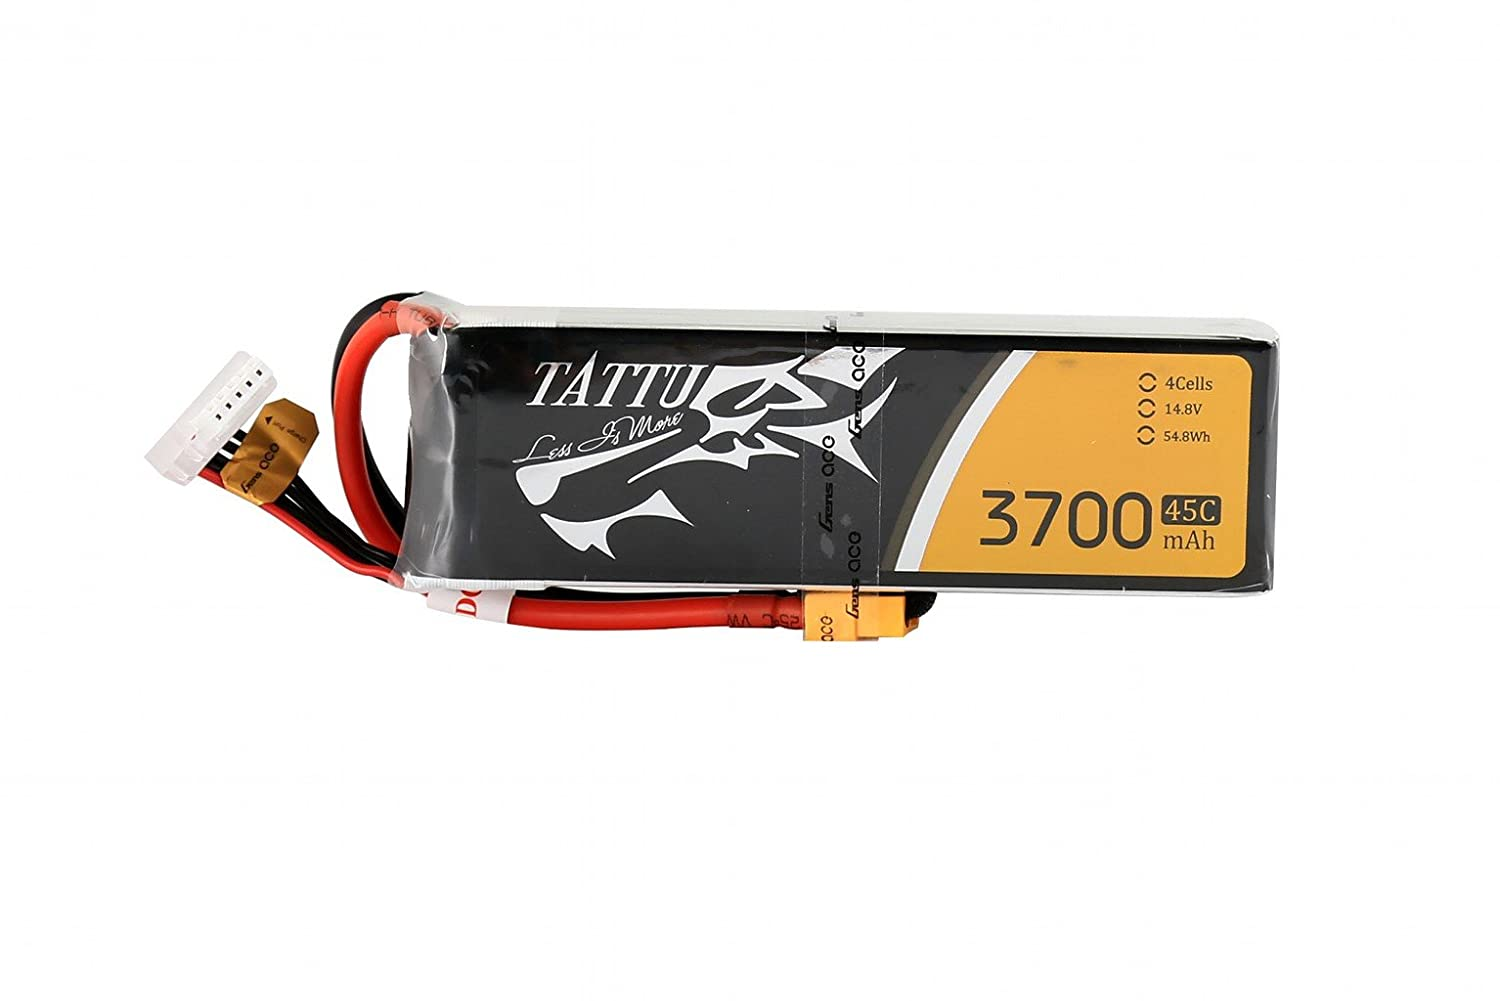 Tattu LiPo Battery Pack 3700mAh 14.8V 45C 4S Rechargeable RC Battery with XT60 Plug for FPV Racing Quad Copter Drone Airplane Aircraft Flight Blackout Mini Spider Hex 330 360